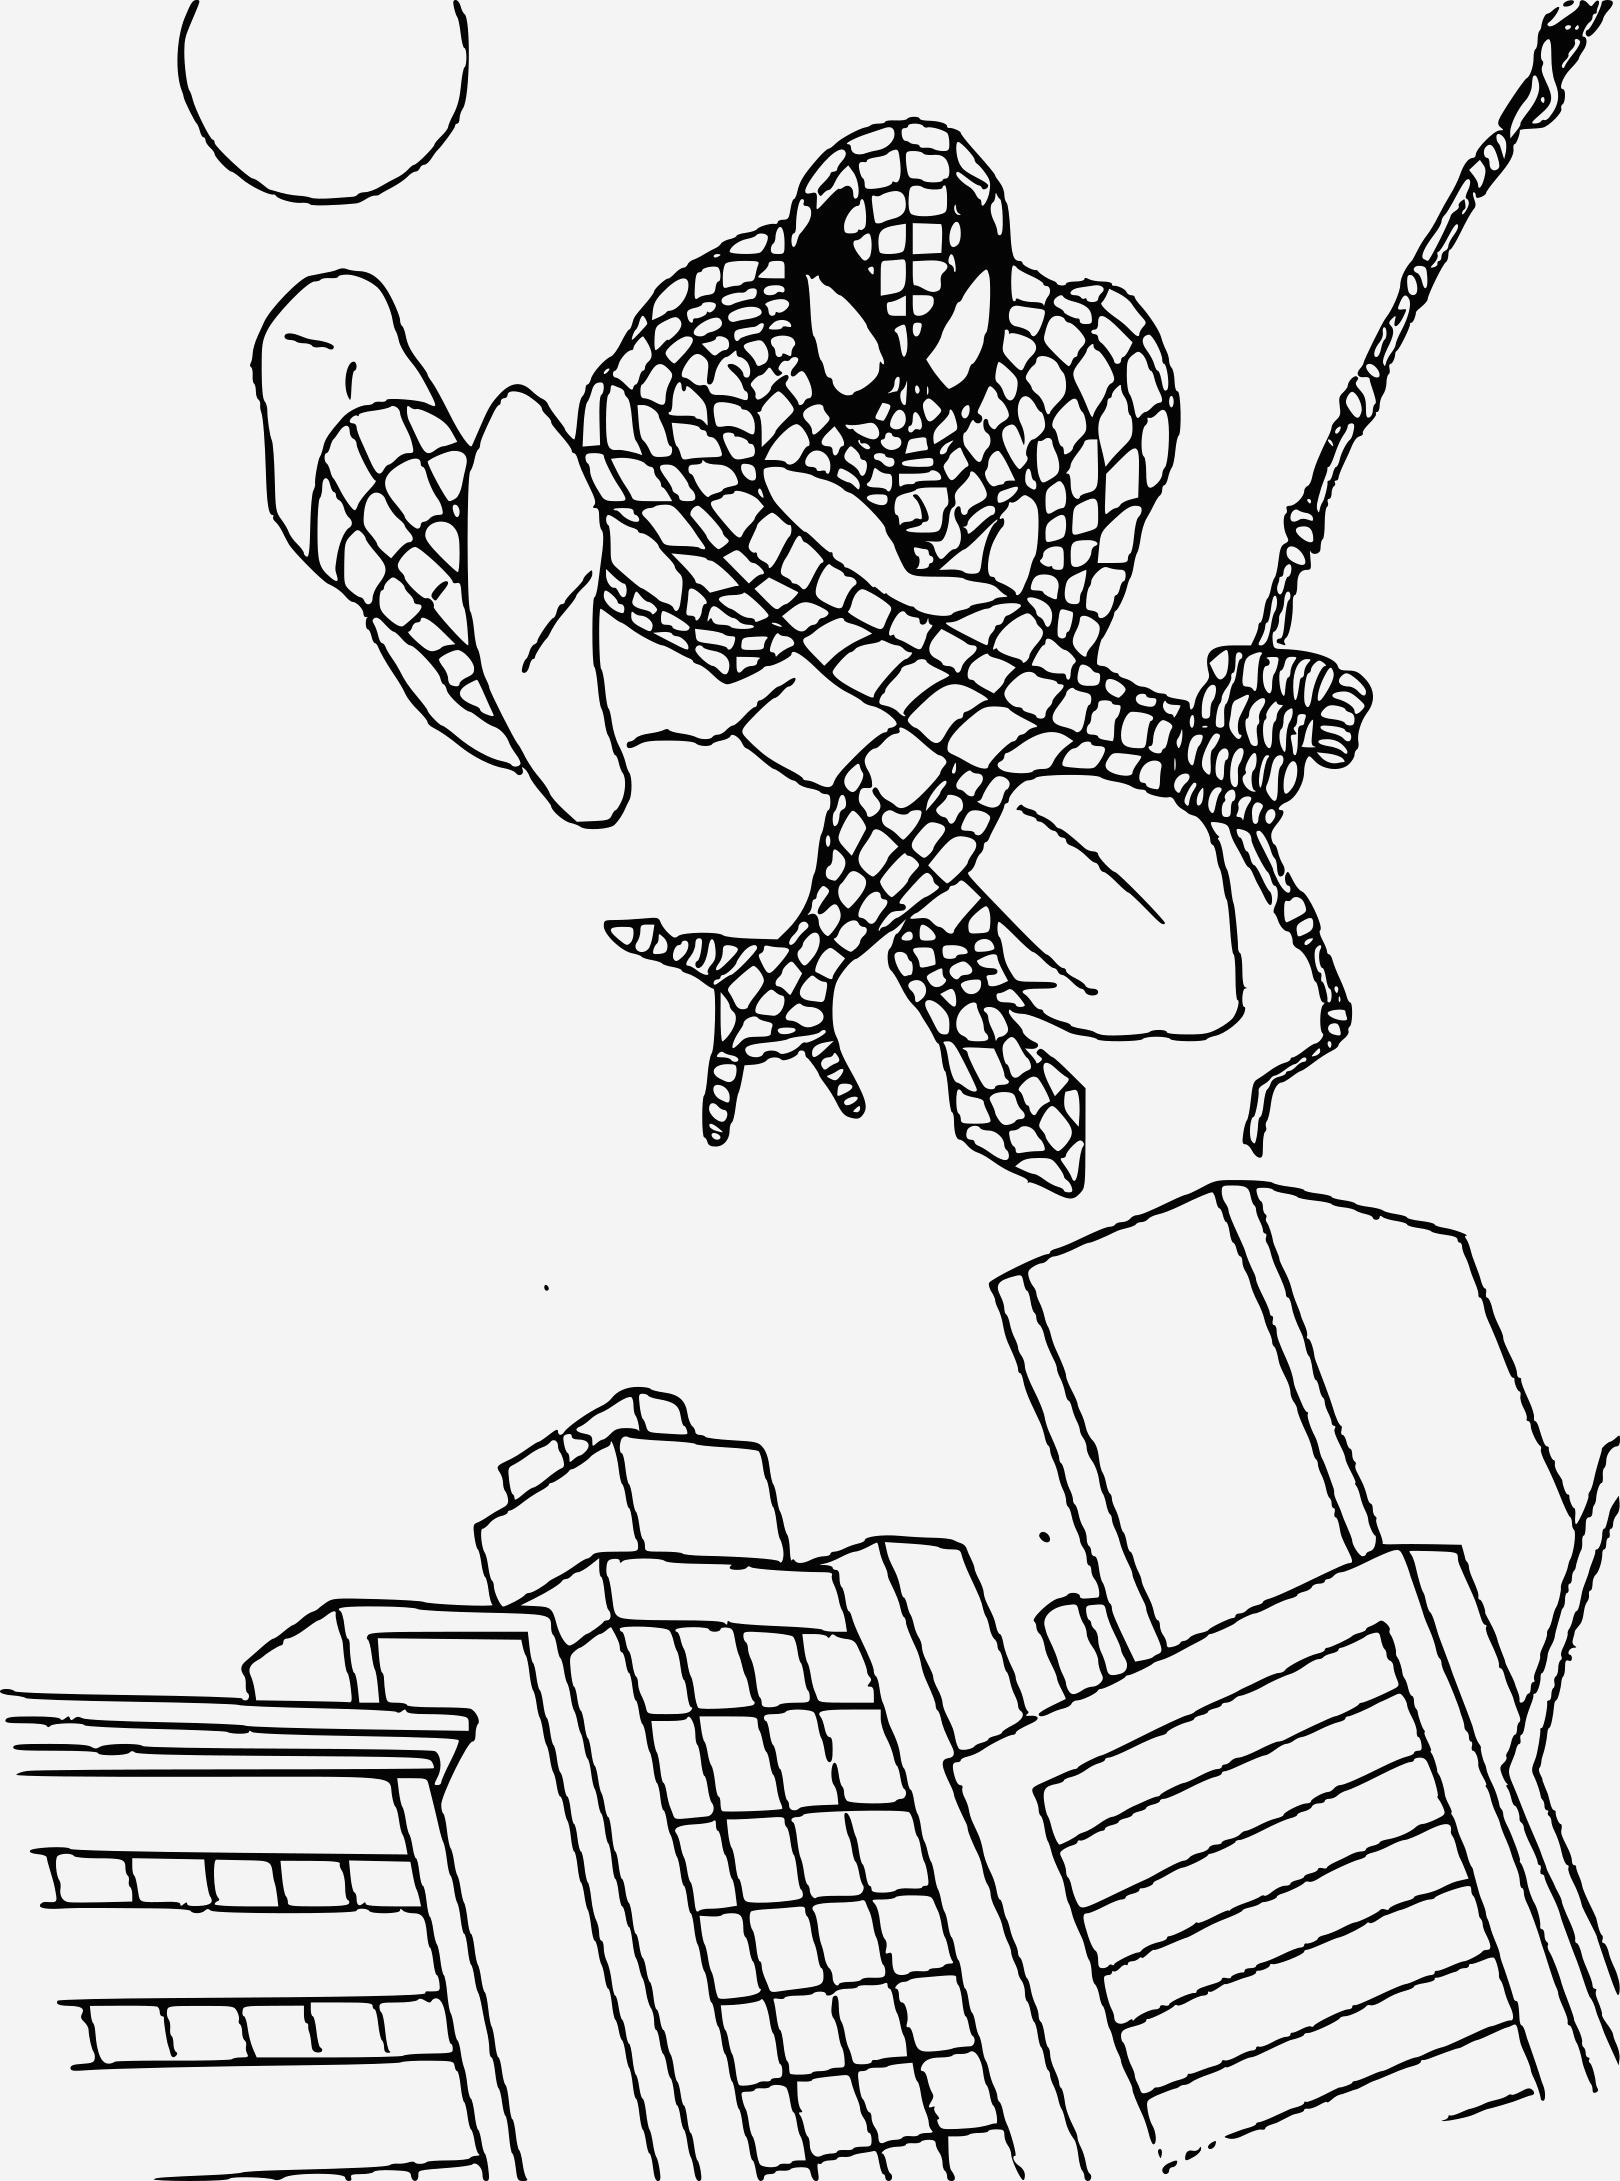 Coloriage De Spiderman New Coloriage Spiderman Au Dessus De La Ville   Imprimer Sur Of Coloriage De Spiderman